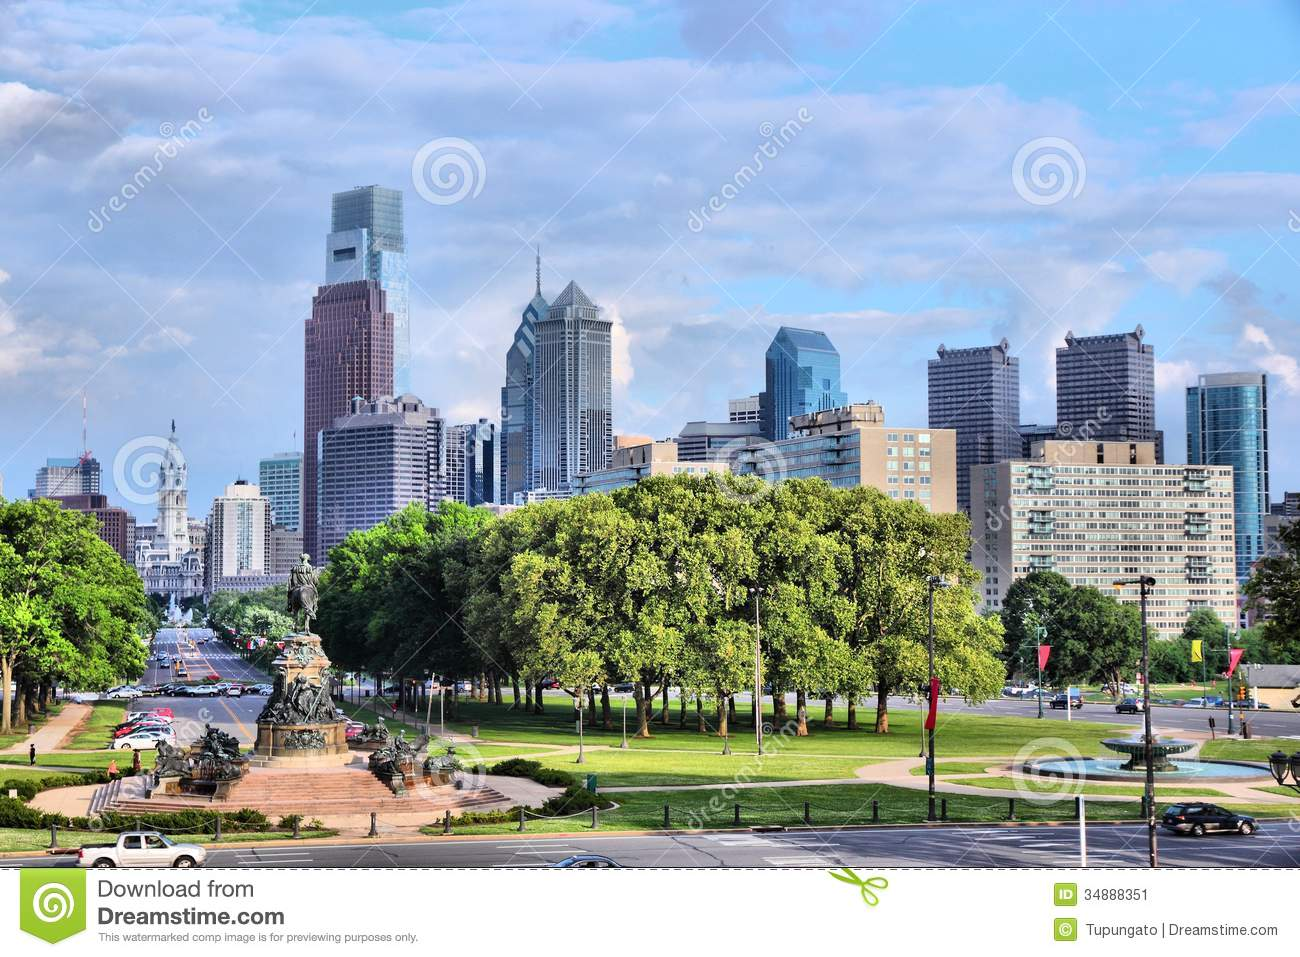 Philadelphia (MS) United States  city pictures gallery : Philadelphia, Pennsylvania in the United States. City skyline with ...